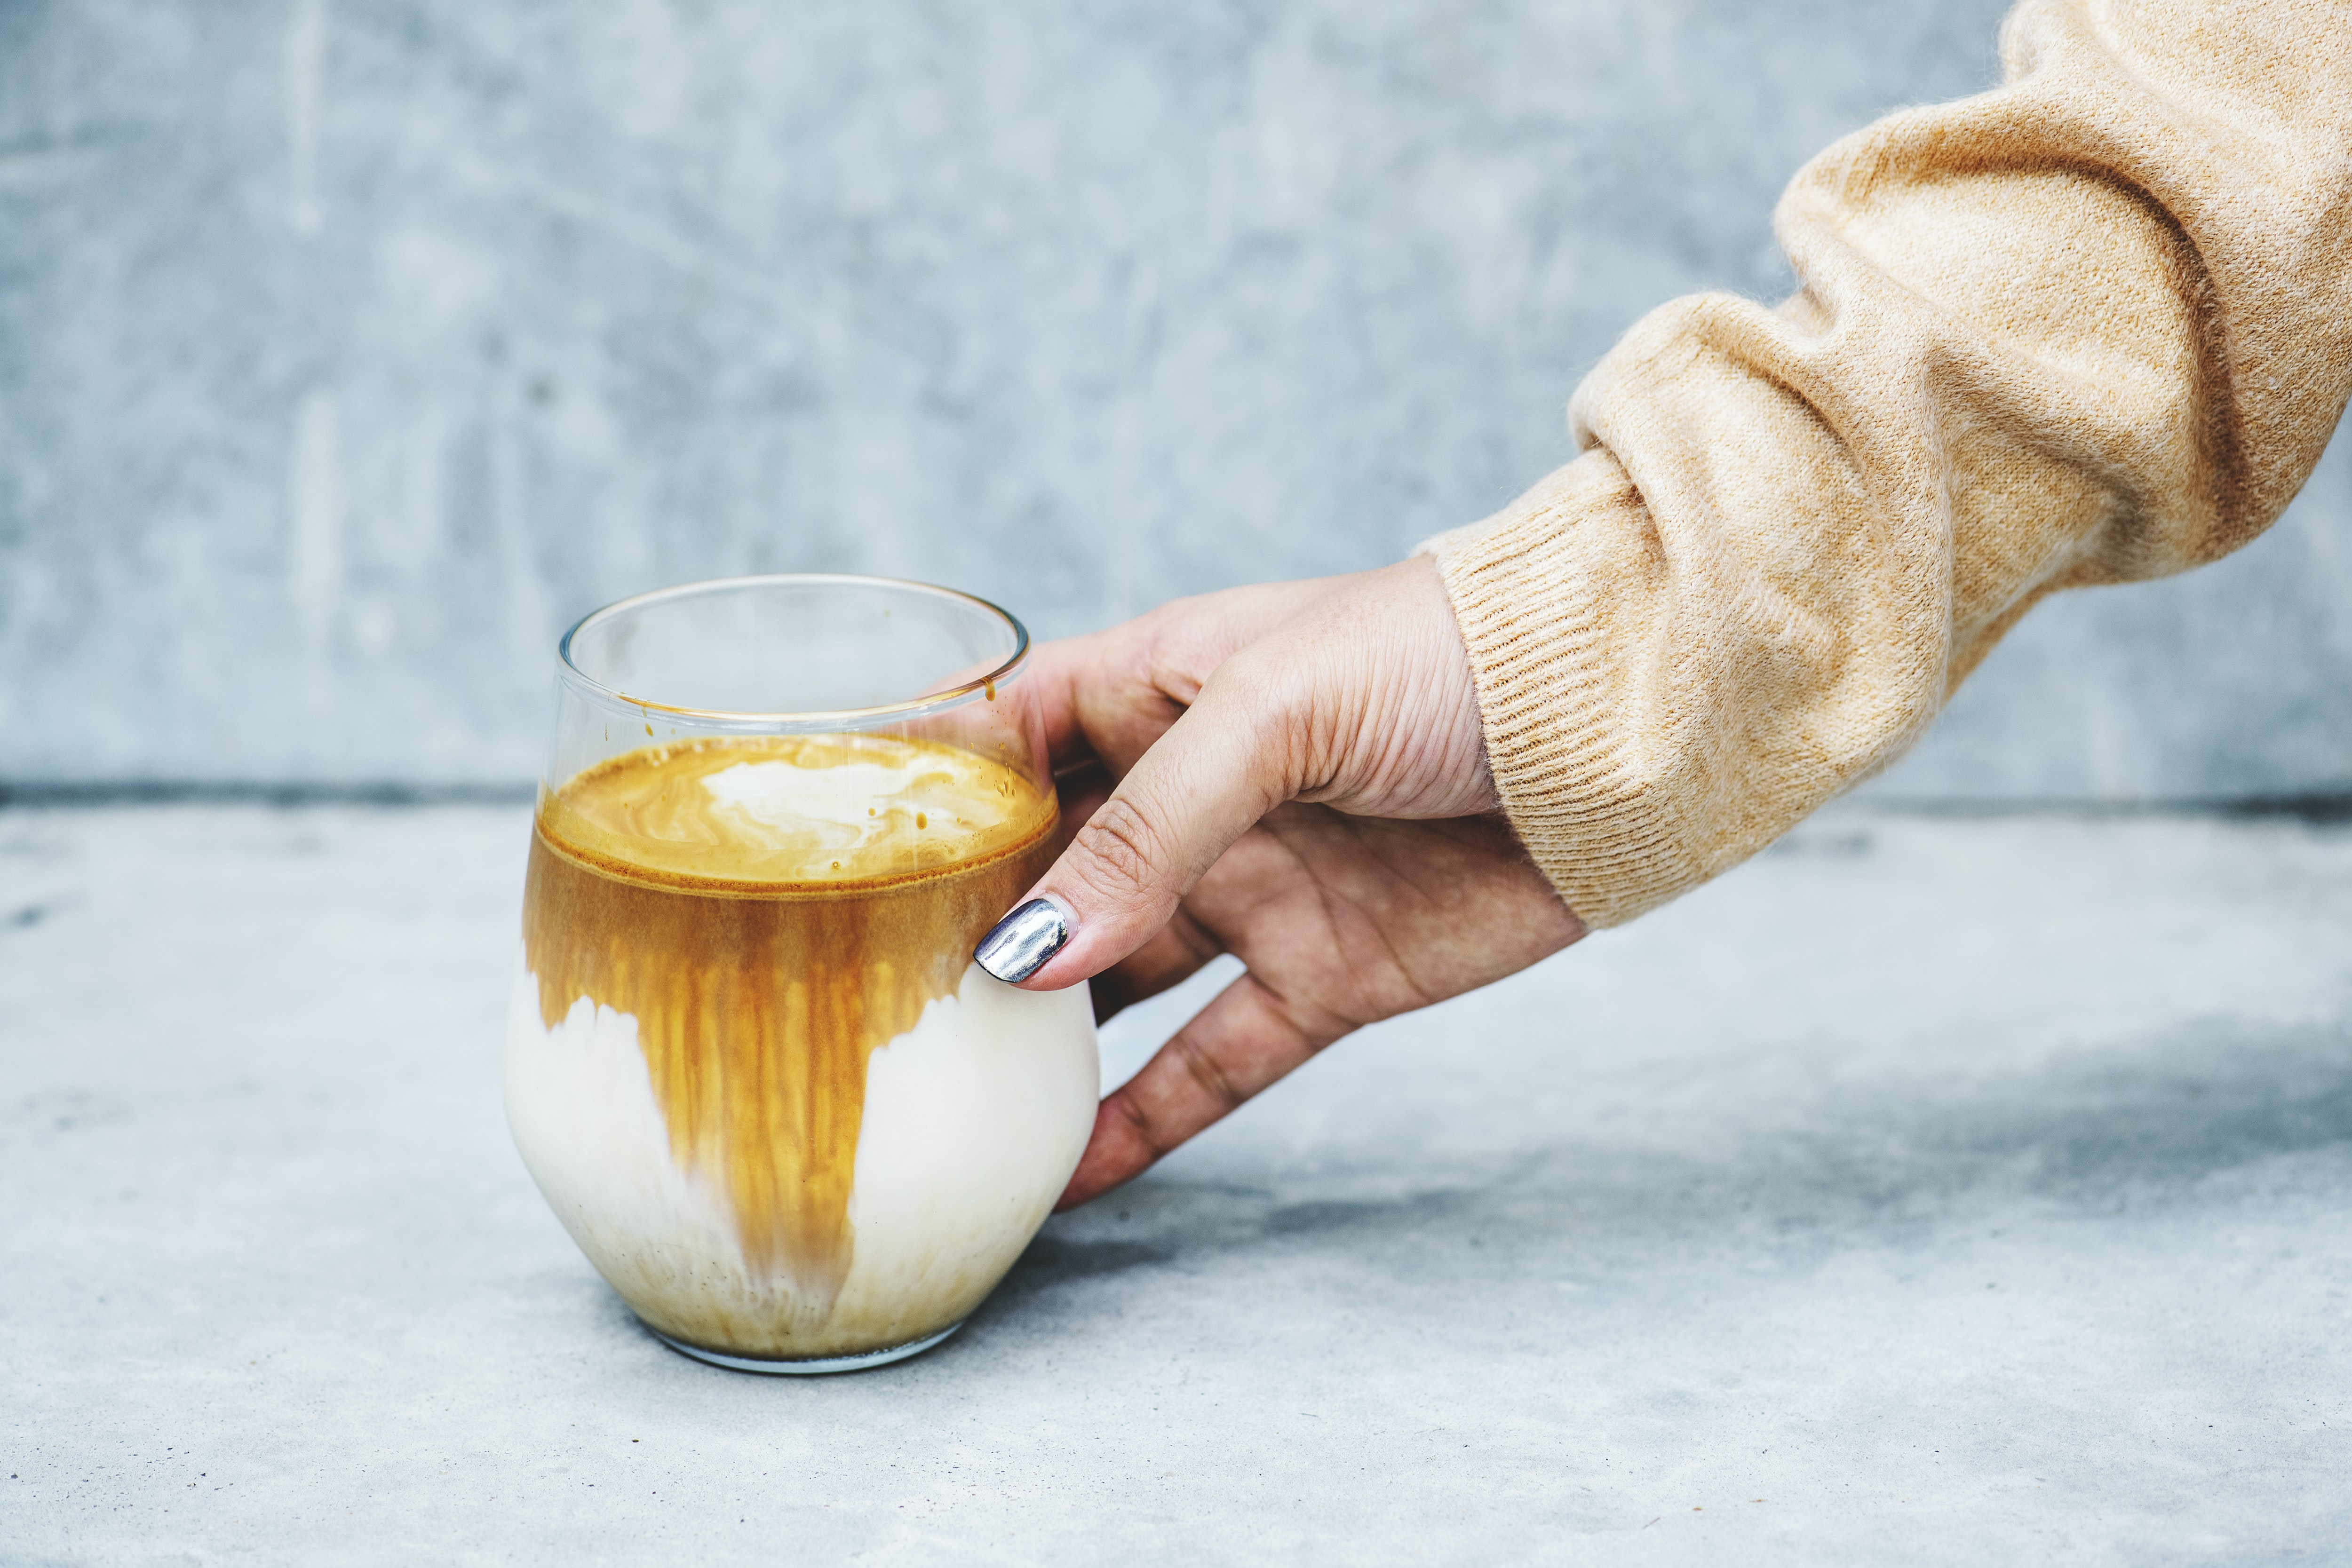 person holding cup filled with brown and white liquid